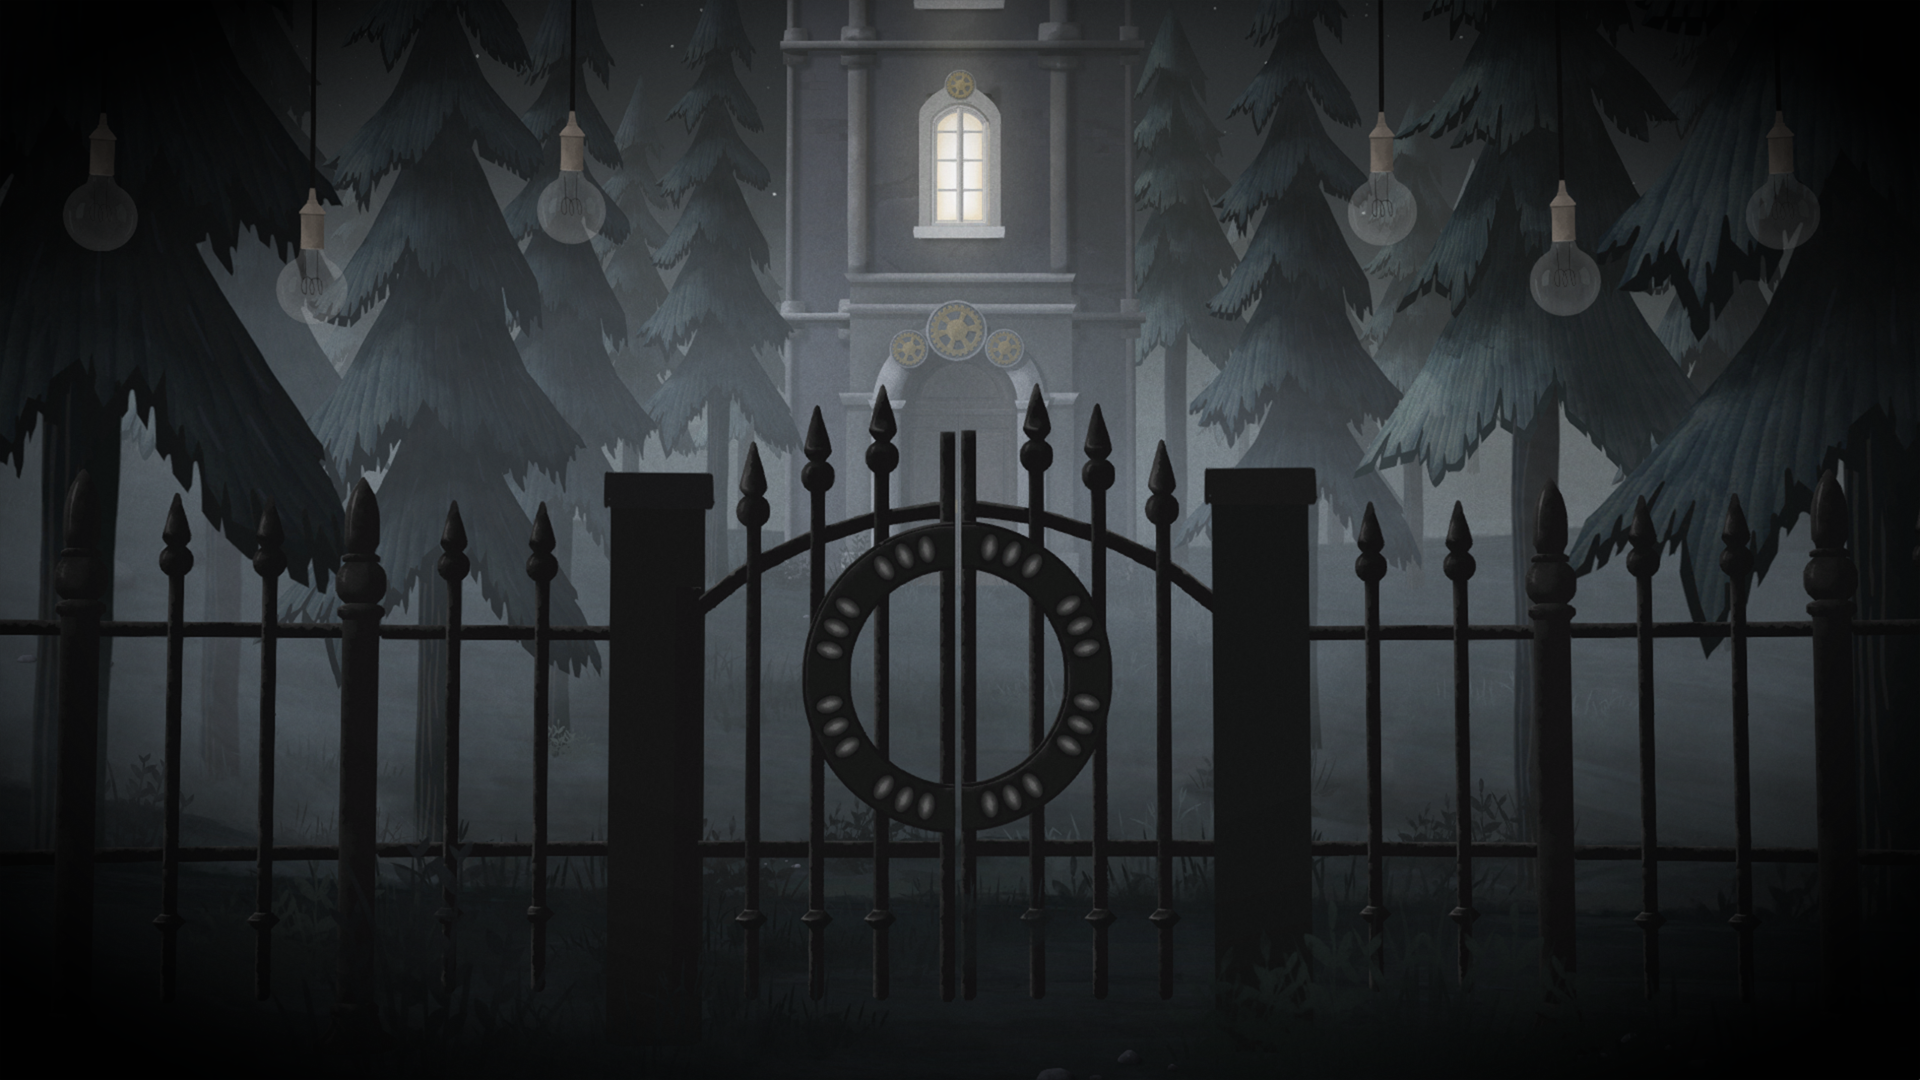 TickTock_Tower-gate_screenshot